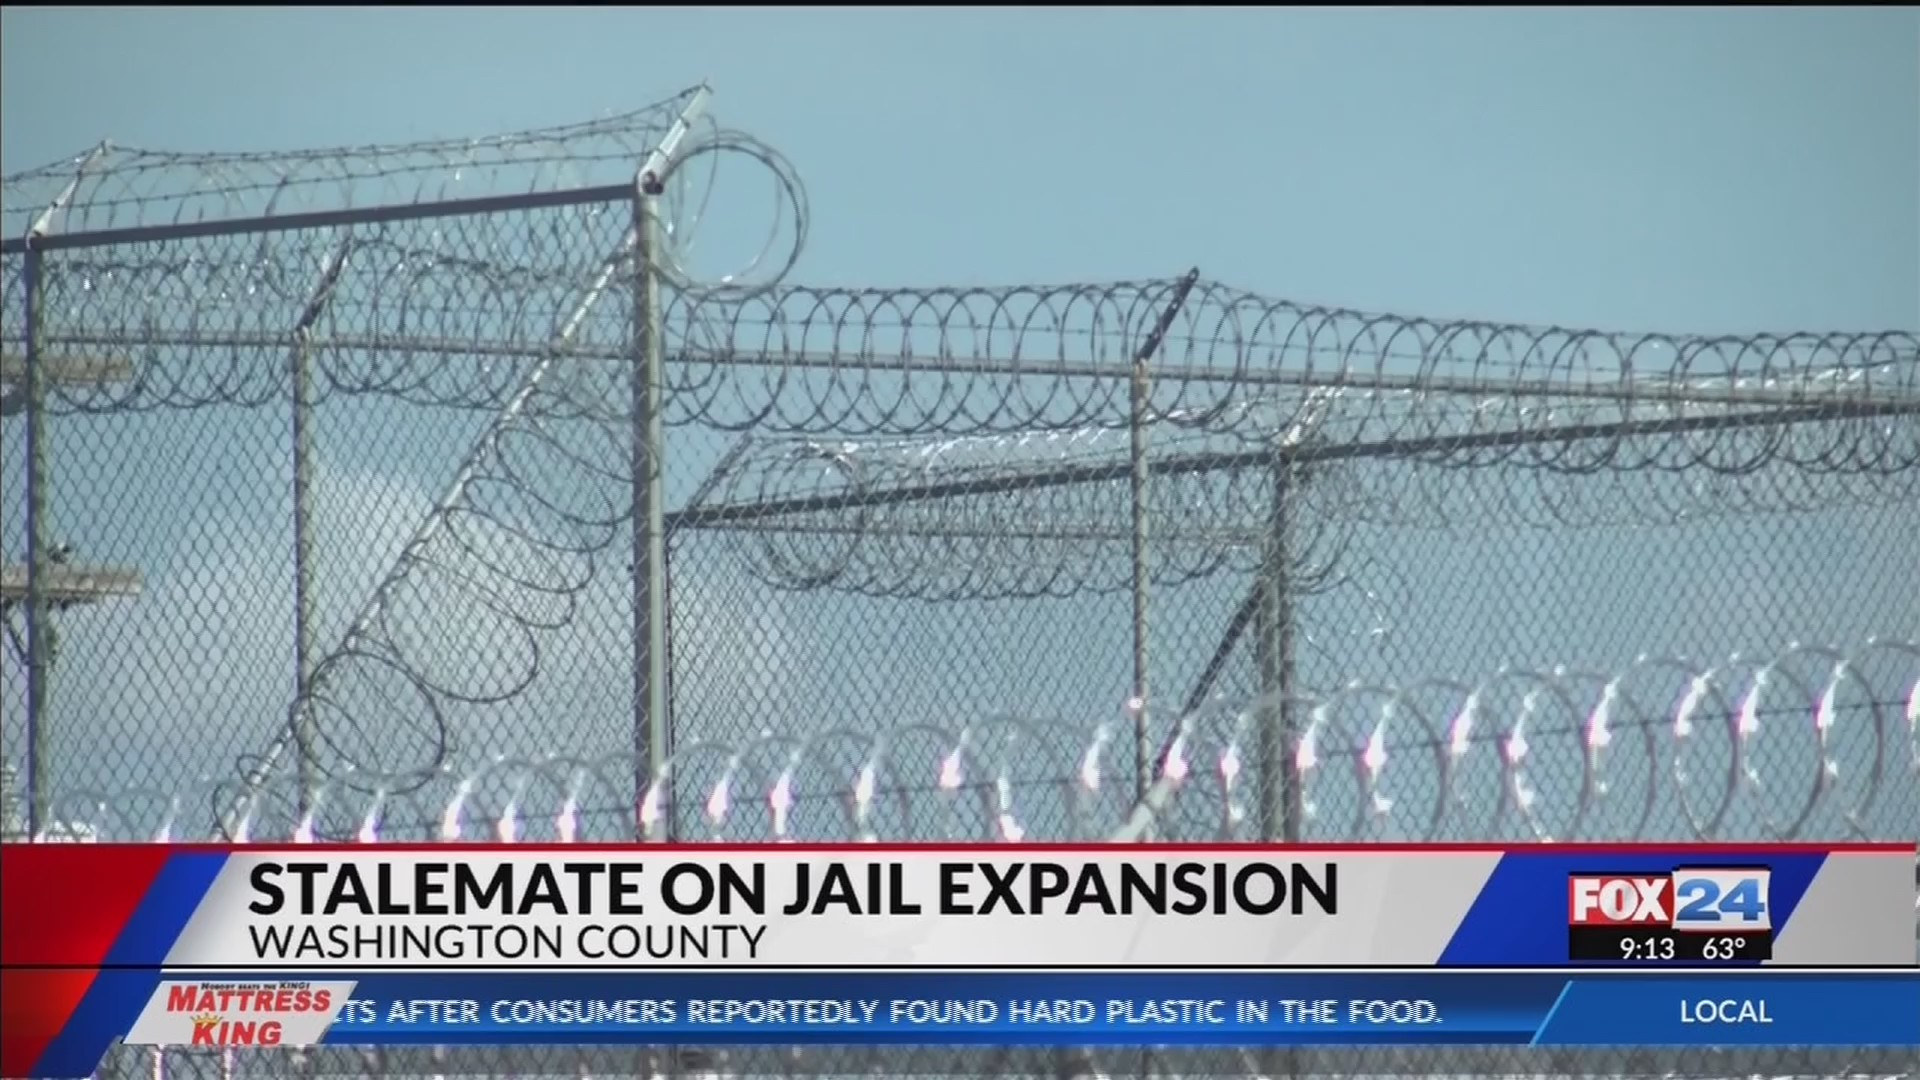 Washington County officials reach stalemate on jail expansion